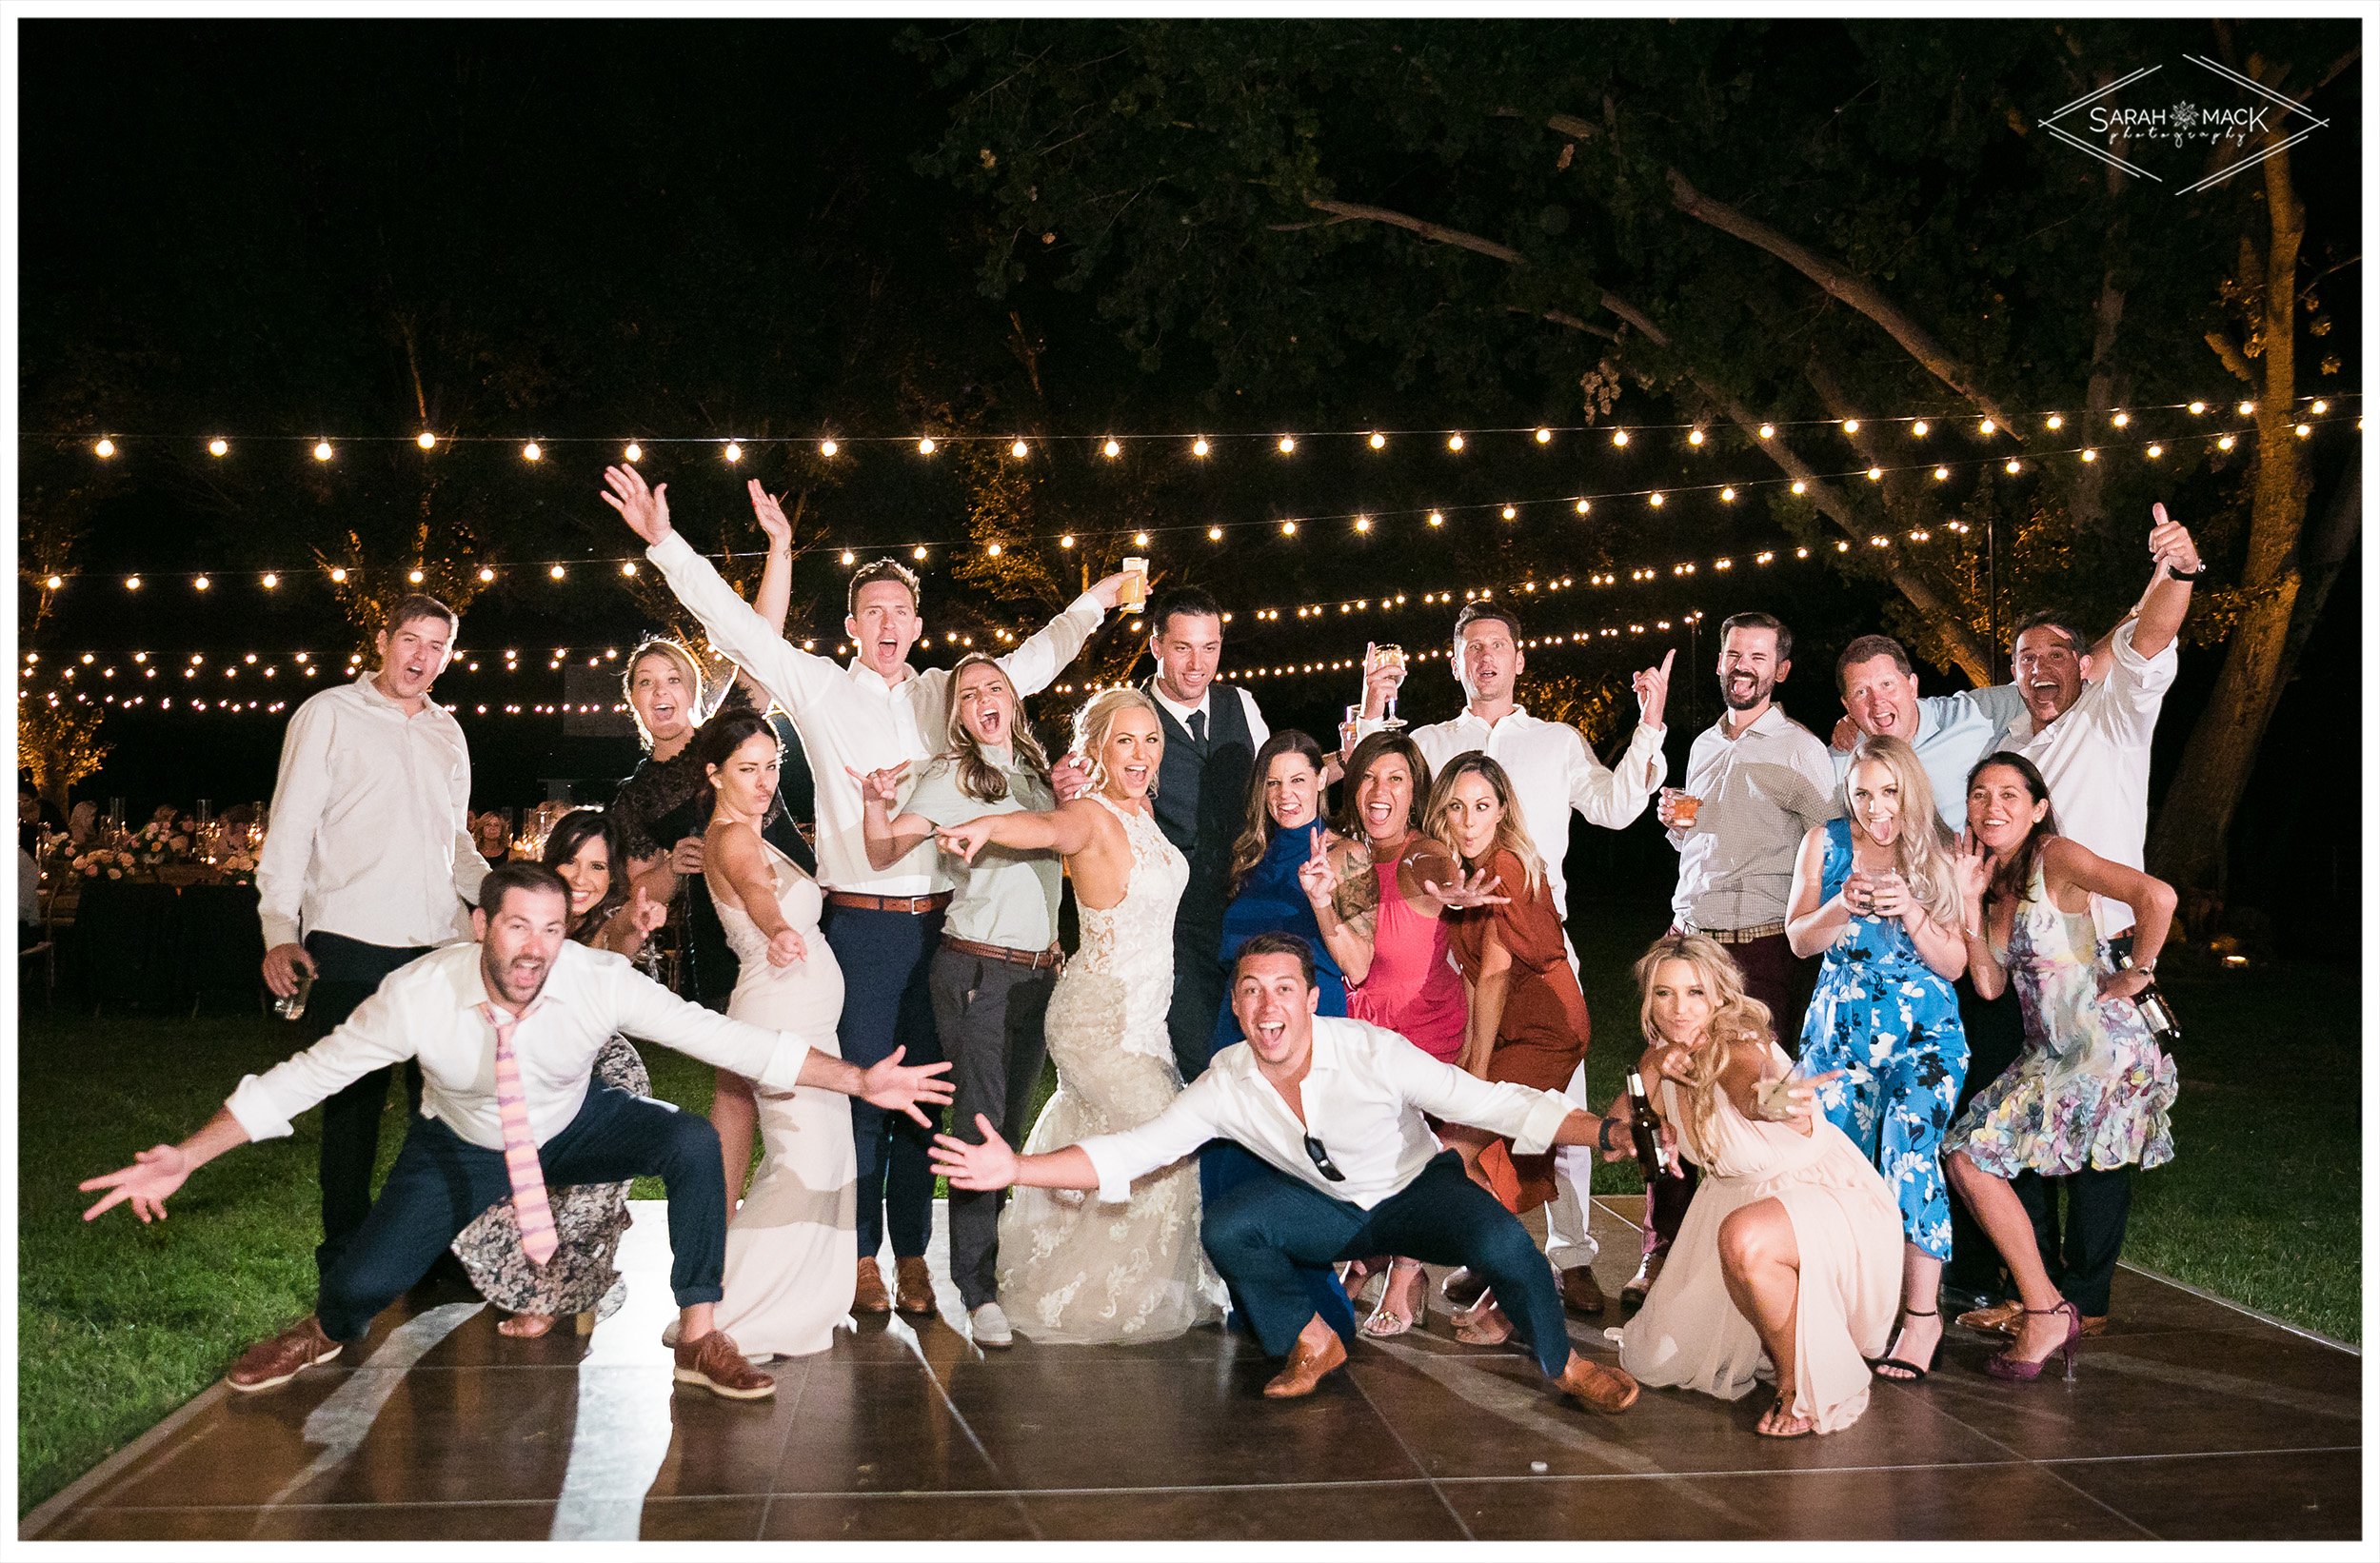 MA-Chandler-Ranch-Paso-Robles-Wedding-Photography-81.jpg